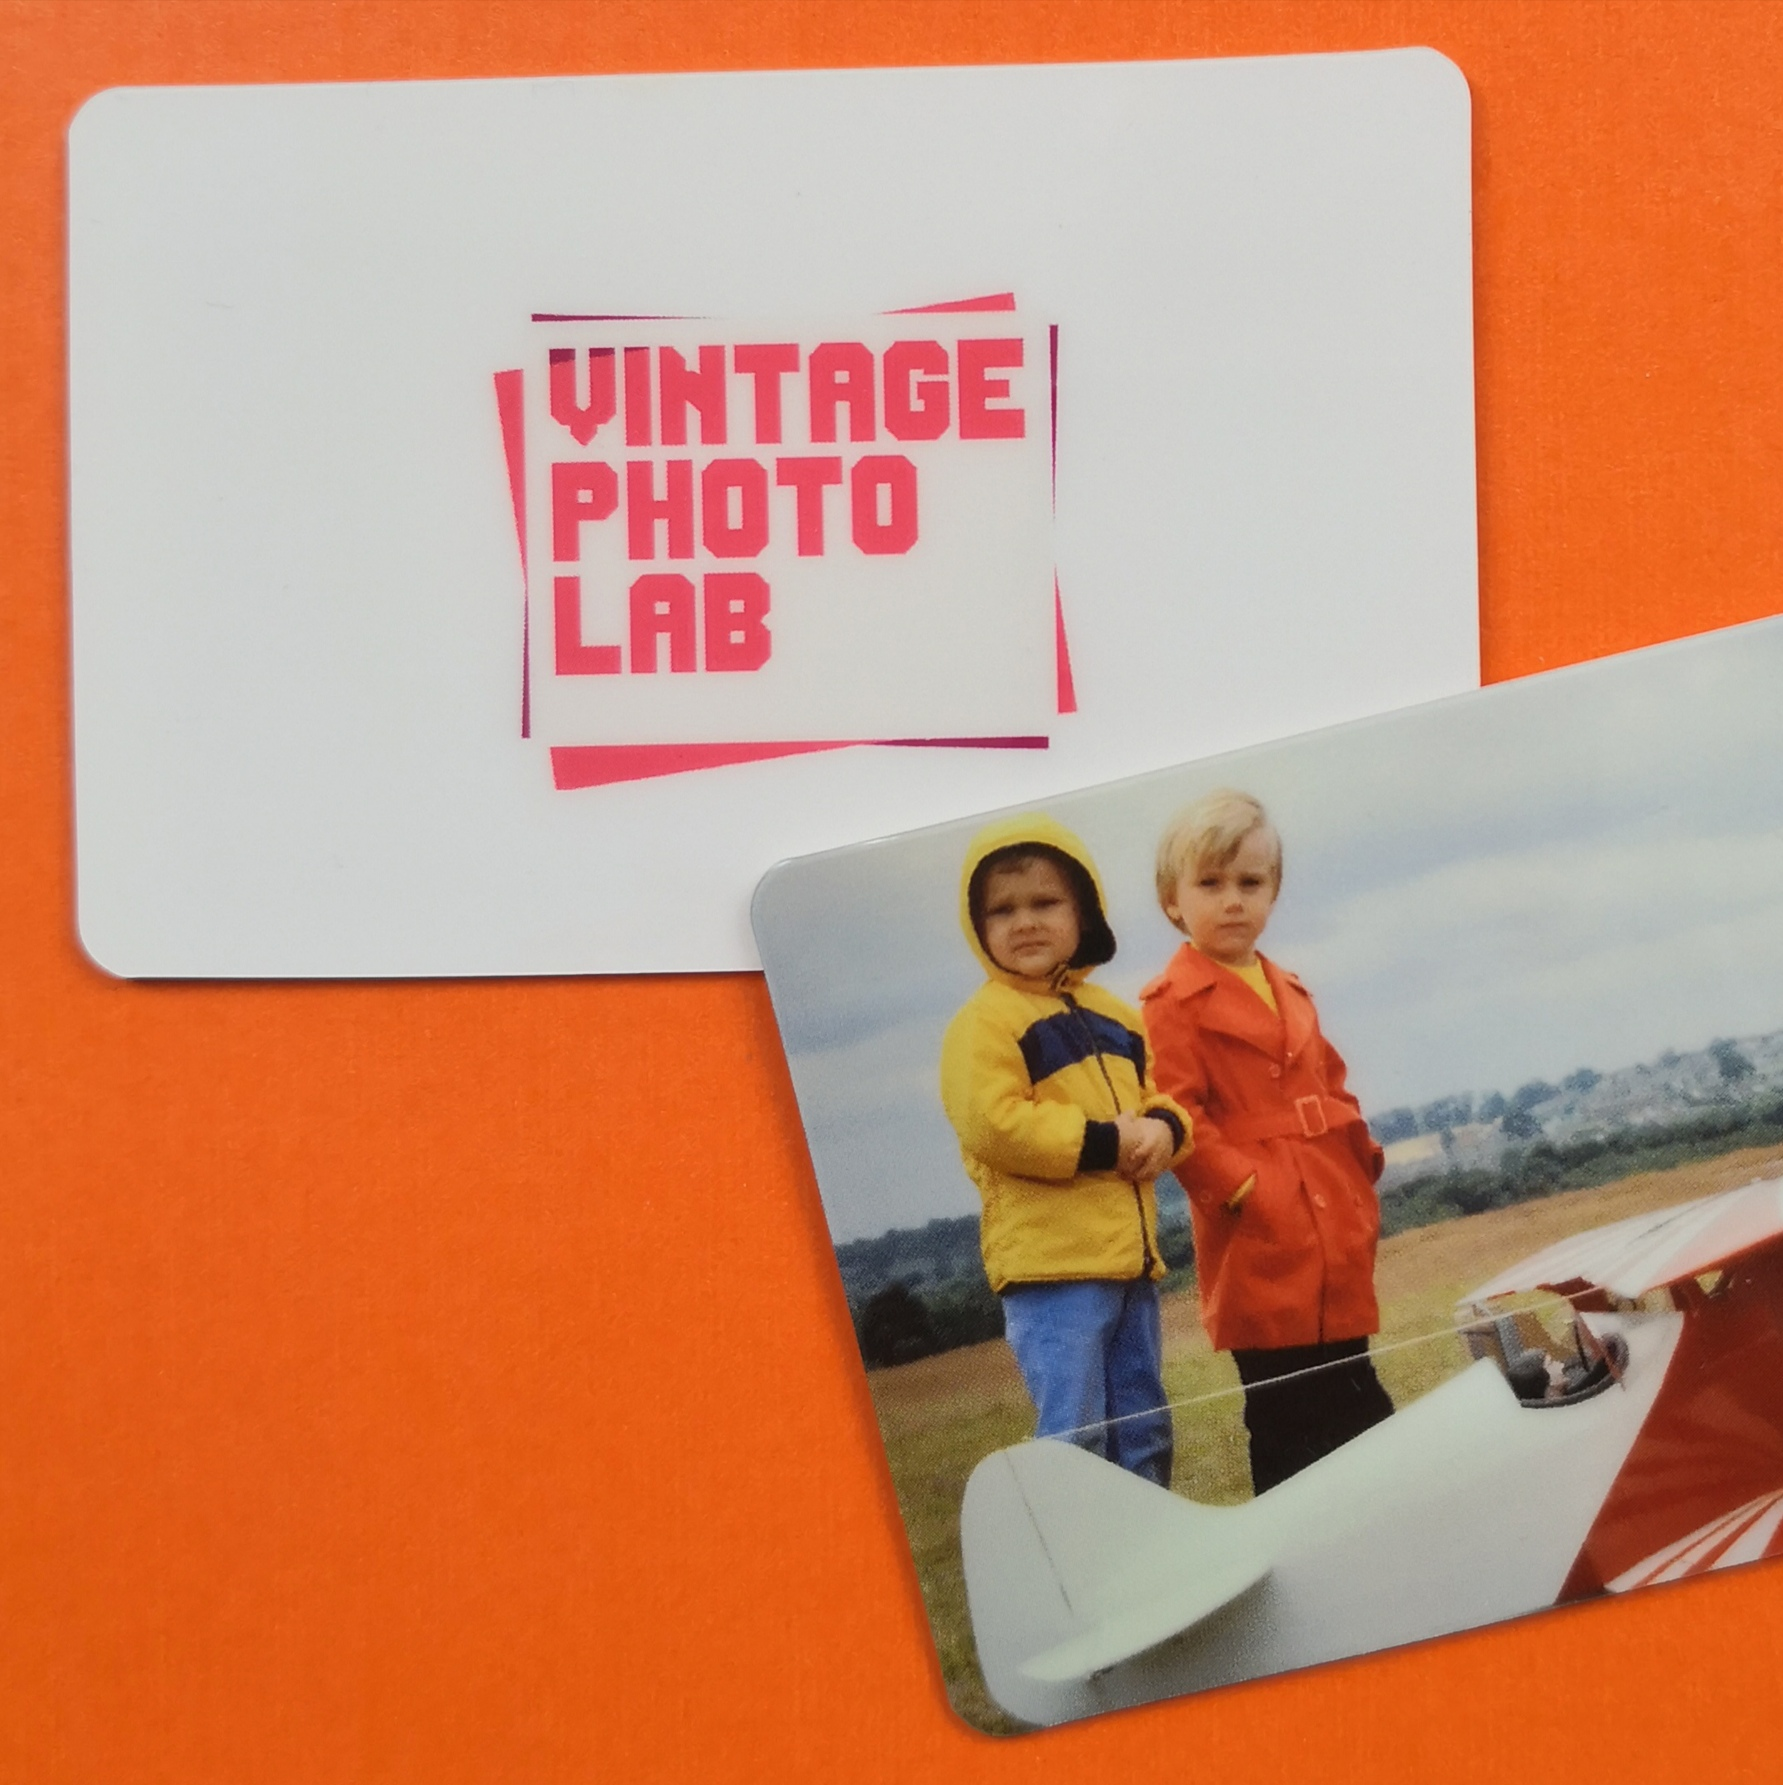 Image of a photo scanning gift card for the photo digitisation service.